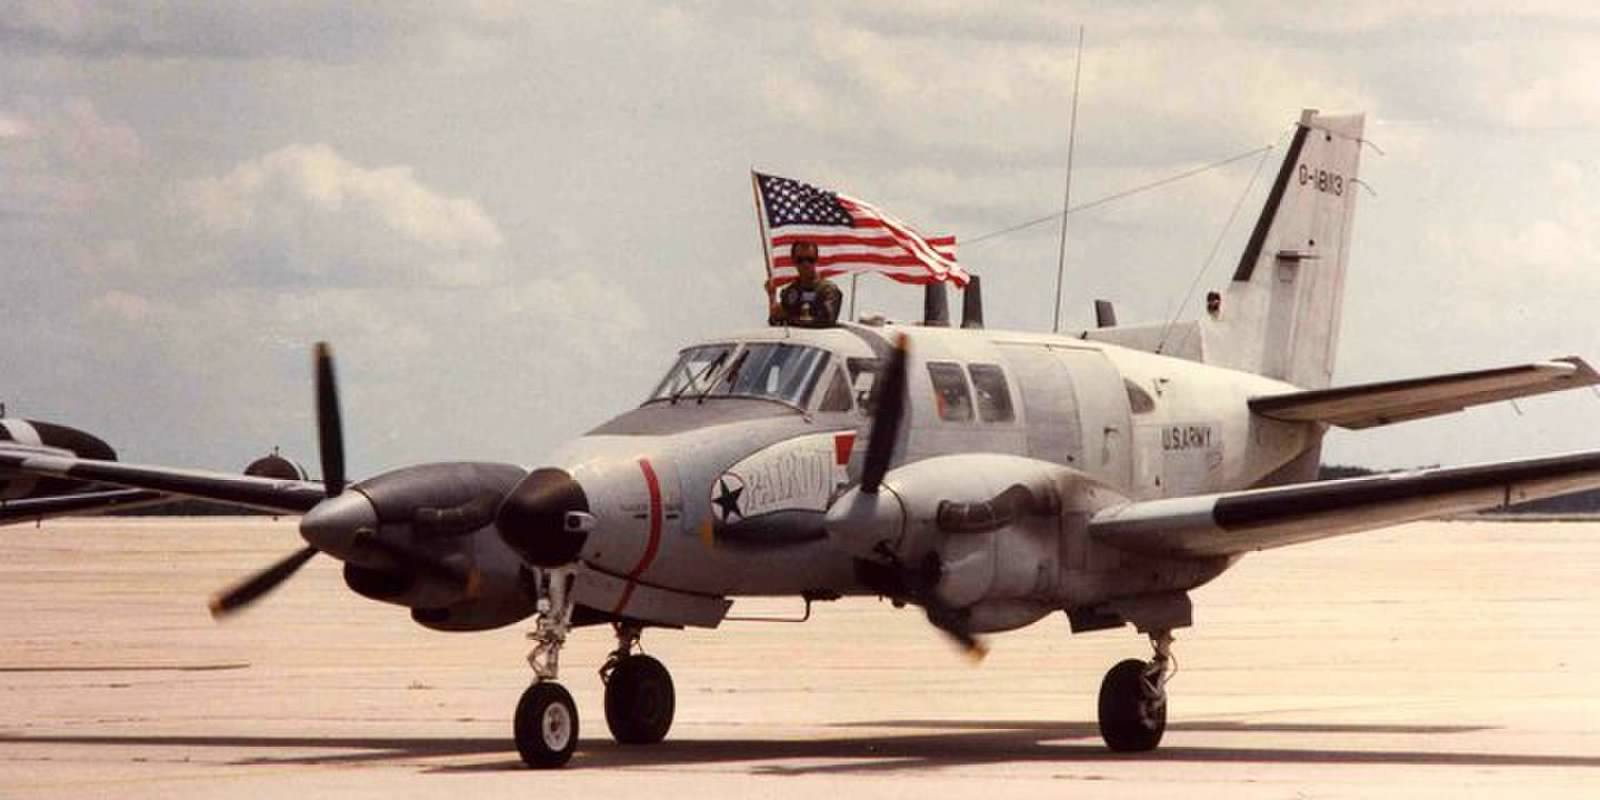 RU-21A 67-18113 as she arrived home in Orlando from the Middle East following her role in the first Gulf War. This is the aircraft which the Memorial has acquired for display. (photo via 138th Aviation Company Memorial)